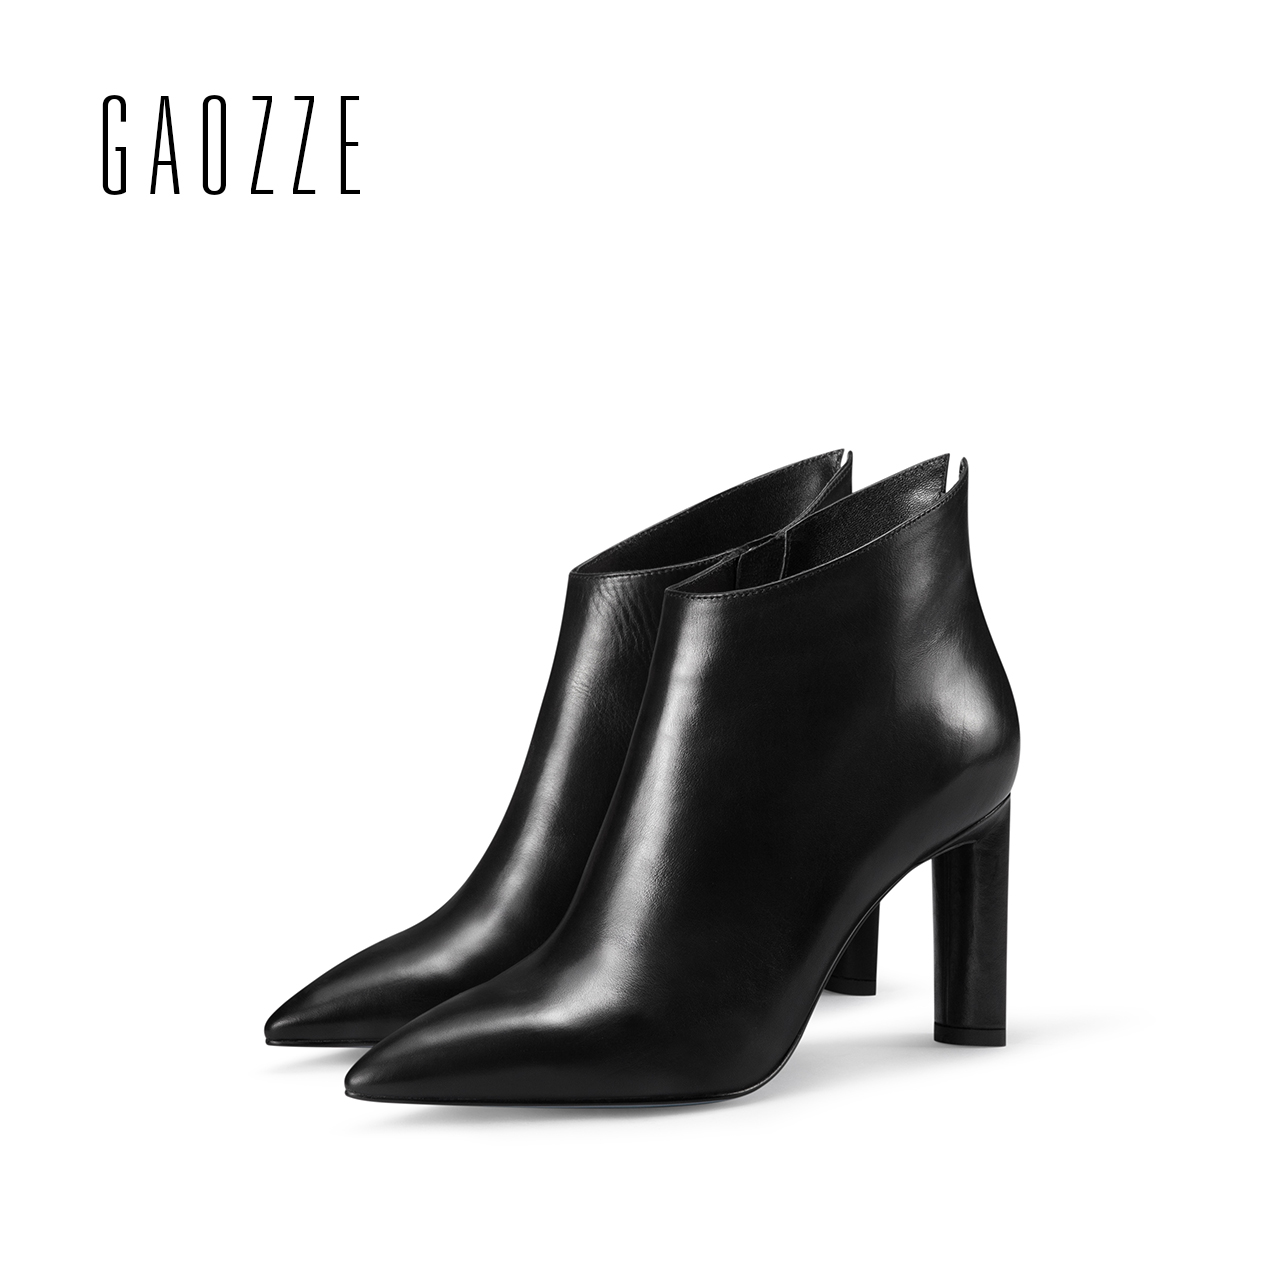 GAOZZE womens black leather boots 2017 new winter women ankle boots high heel side zipper fashion ankle boots shoes for women